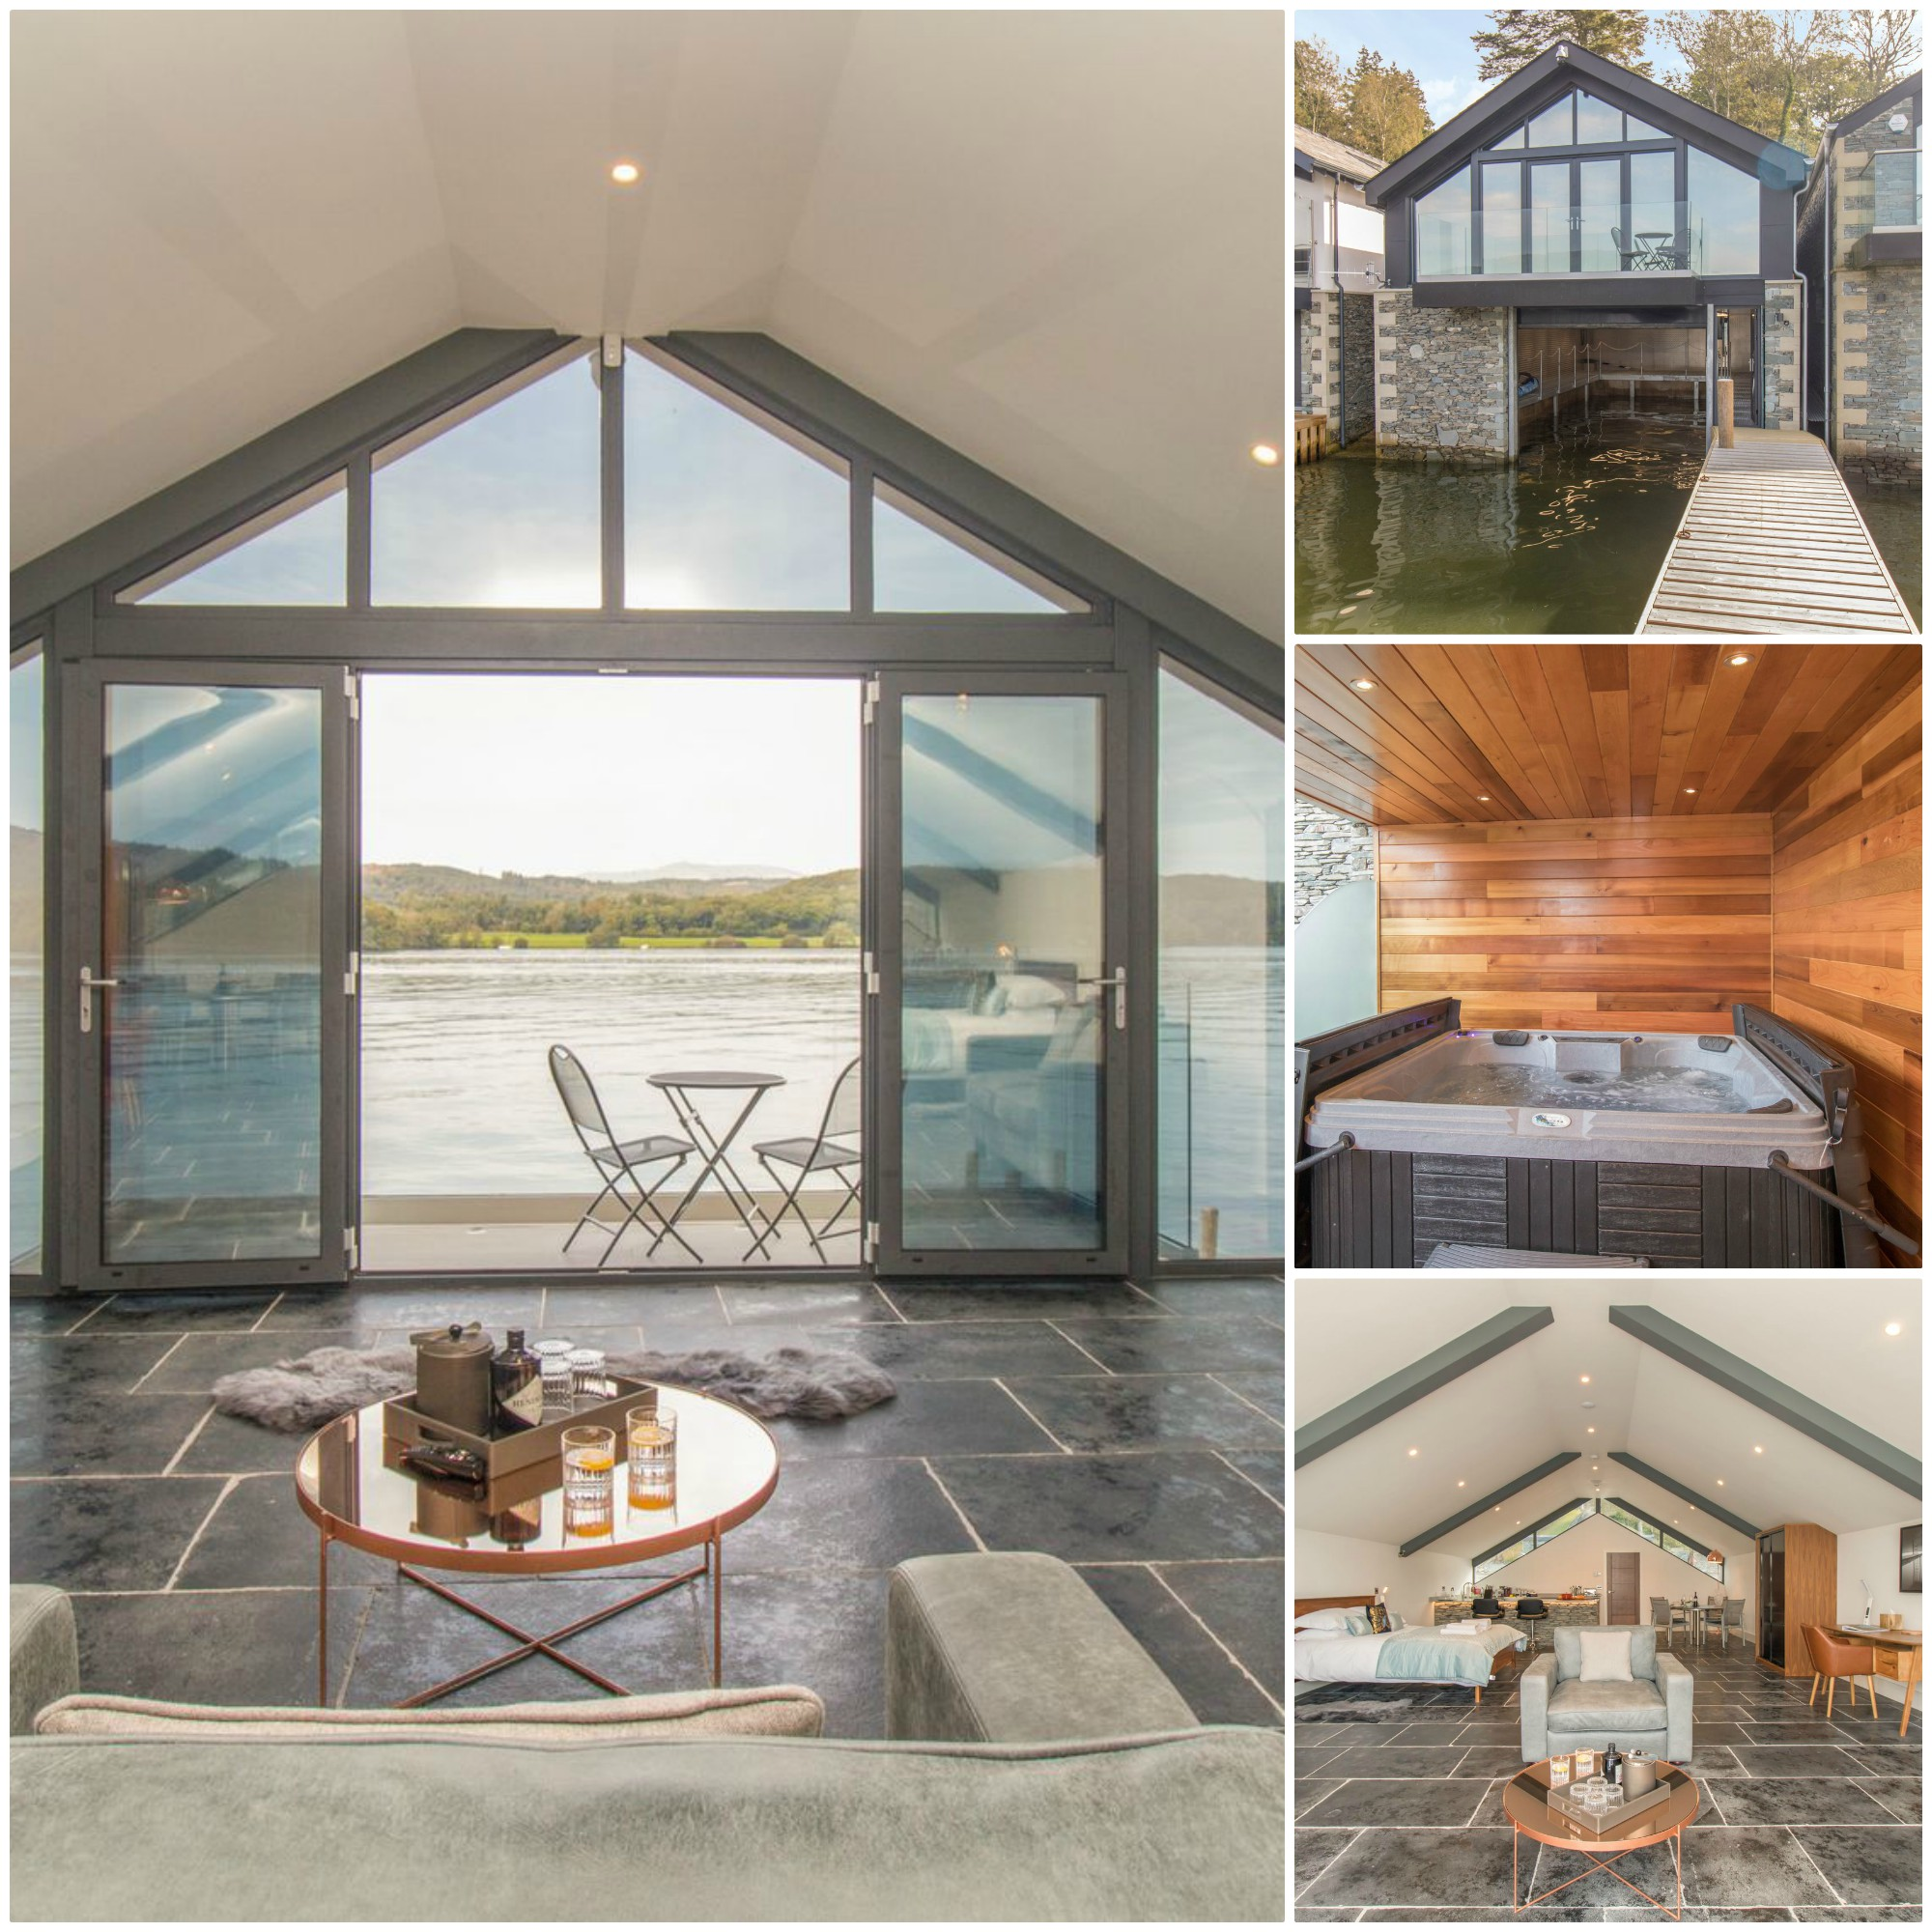 luxurious lake frontage accommodation for 2 in the heart of the English Lake District